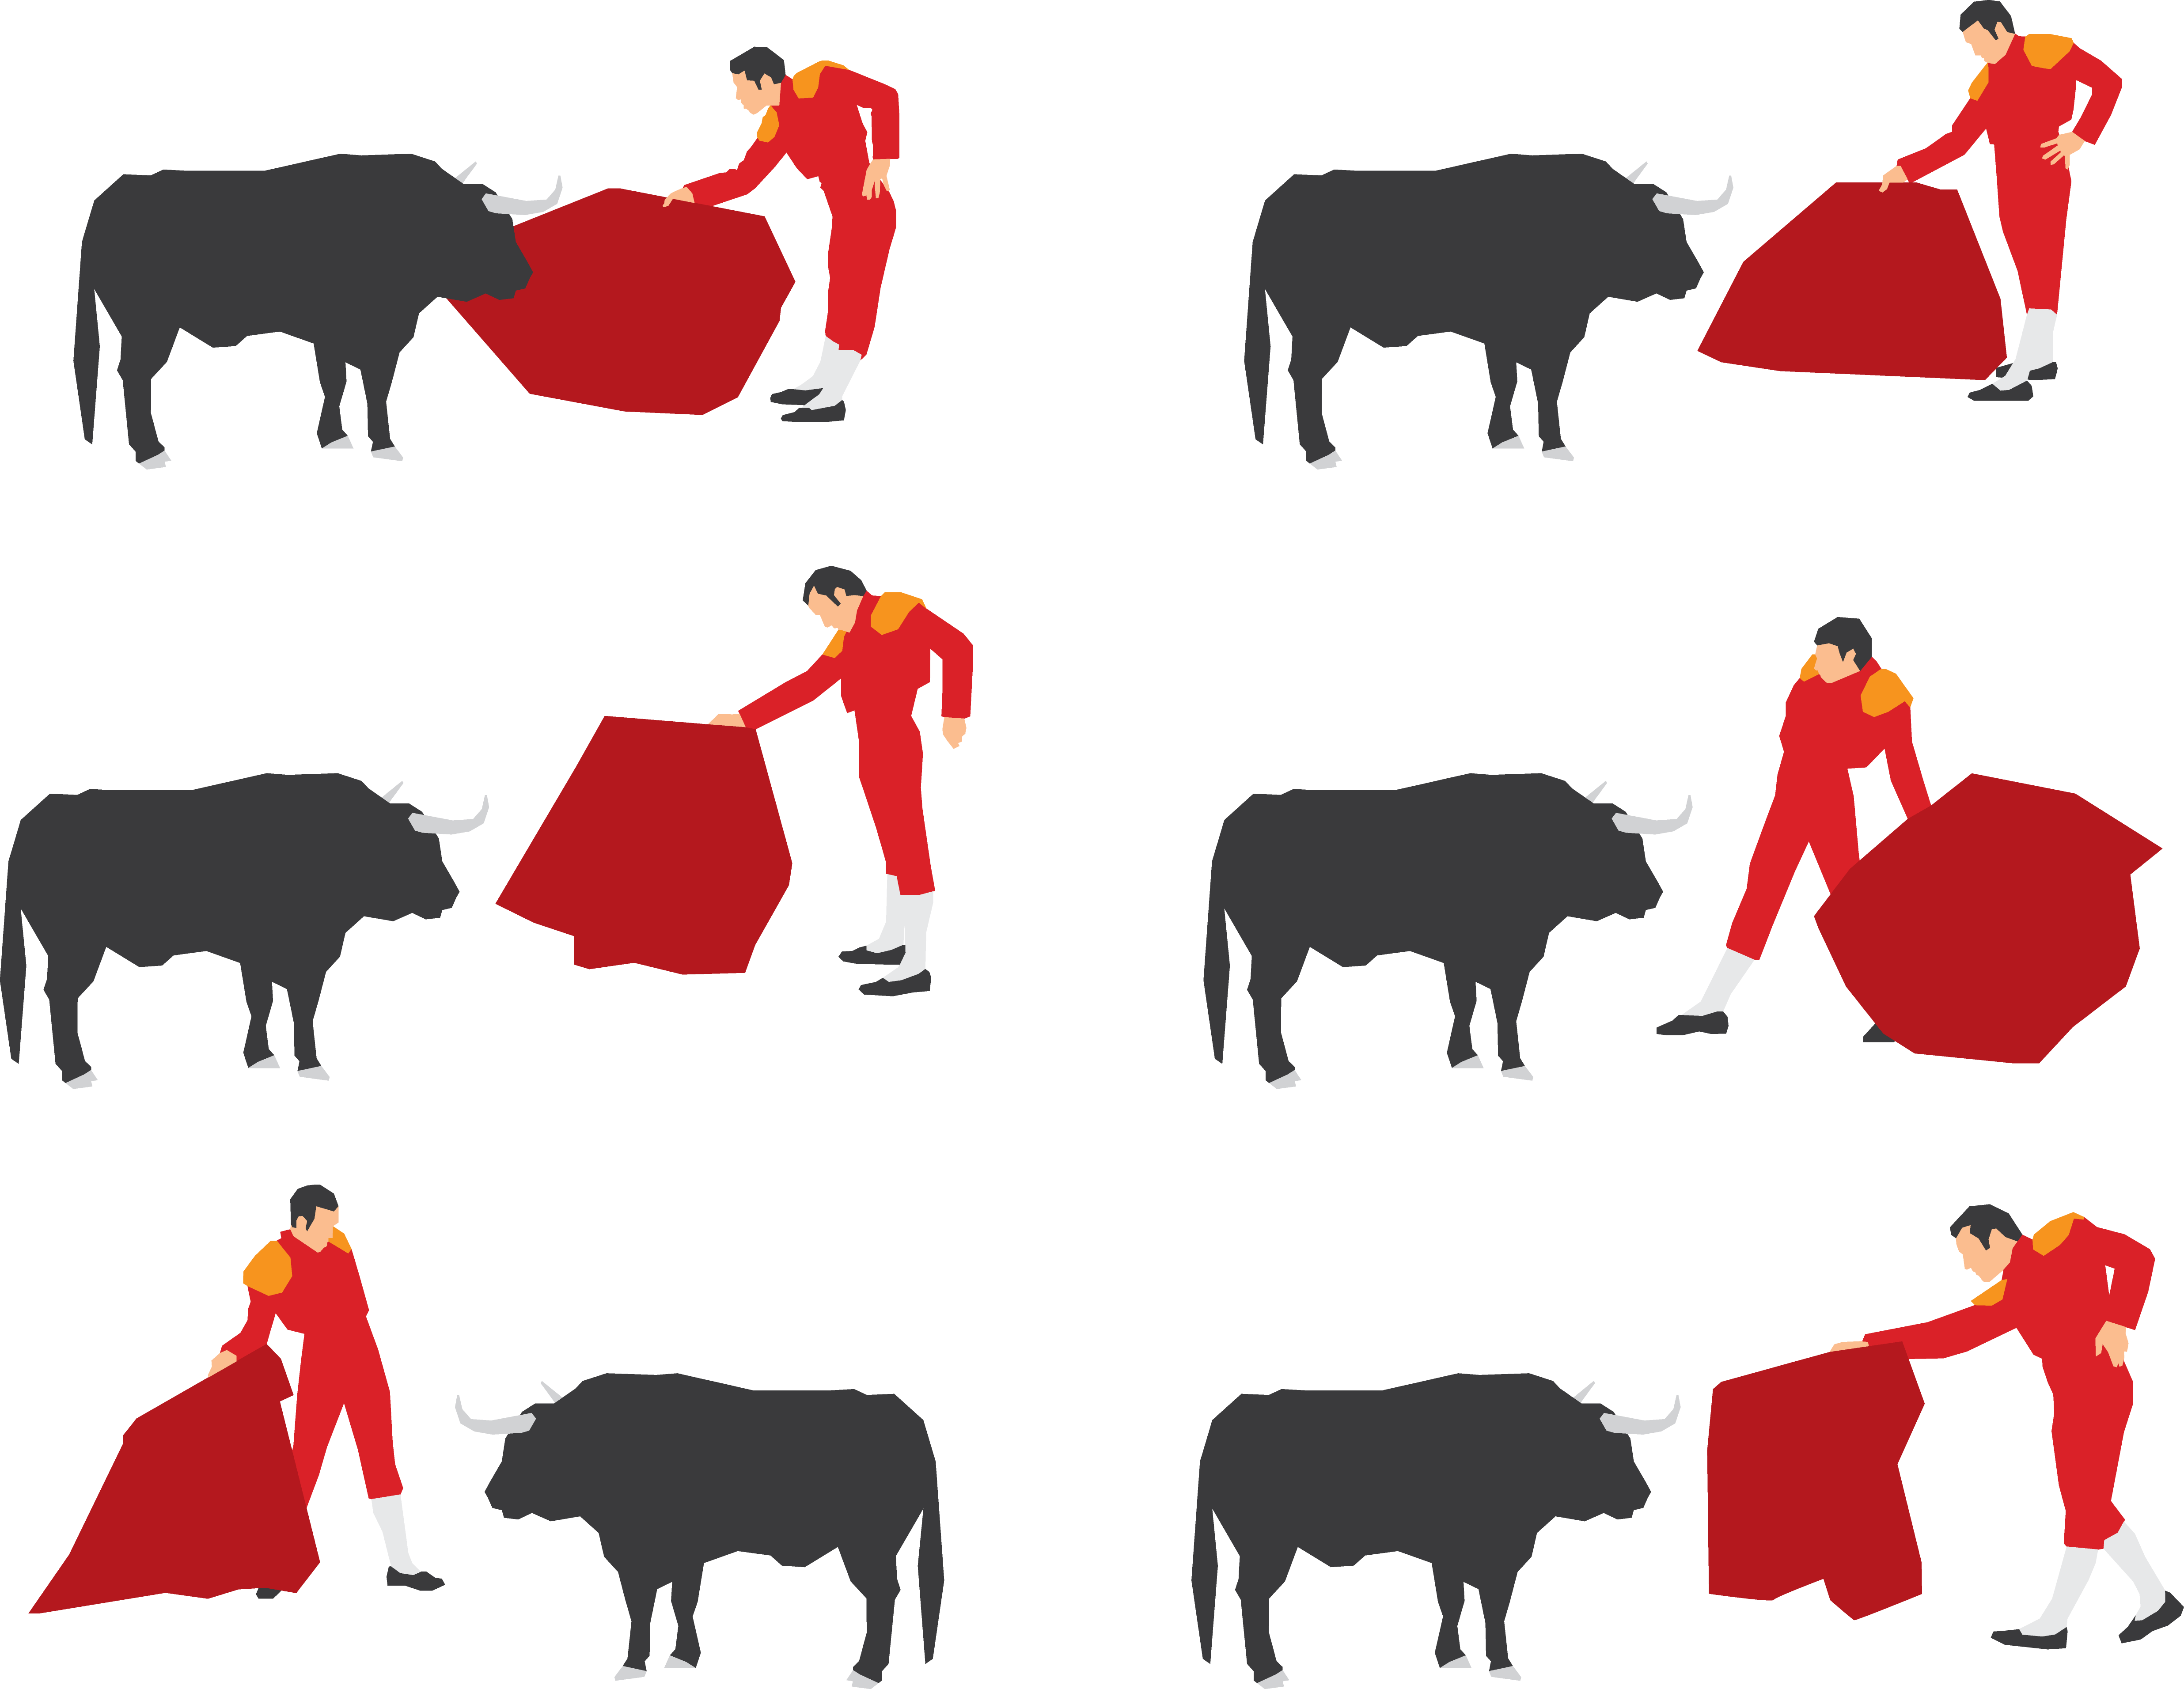 Ox clipart angry cow. Cattle bullring bullfighting bullfighter